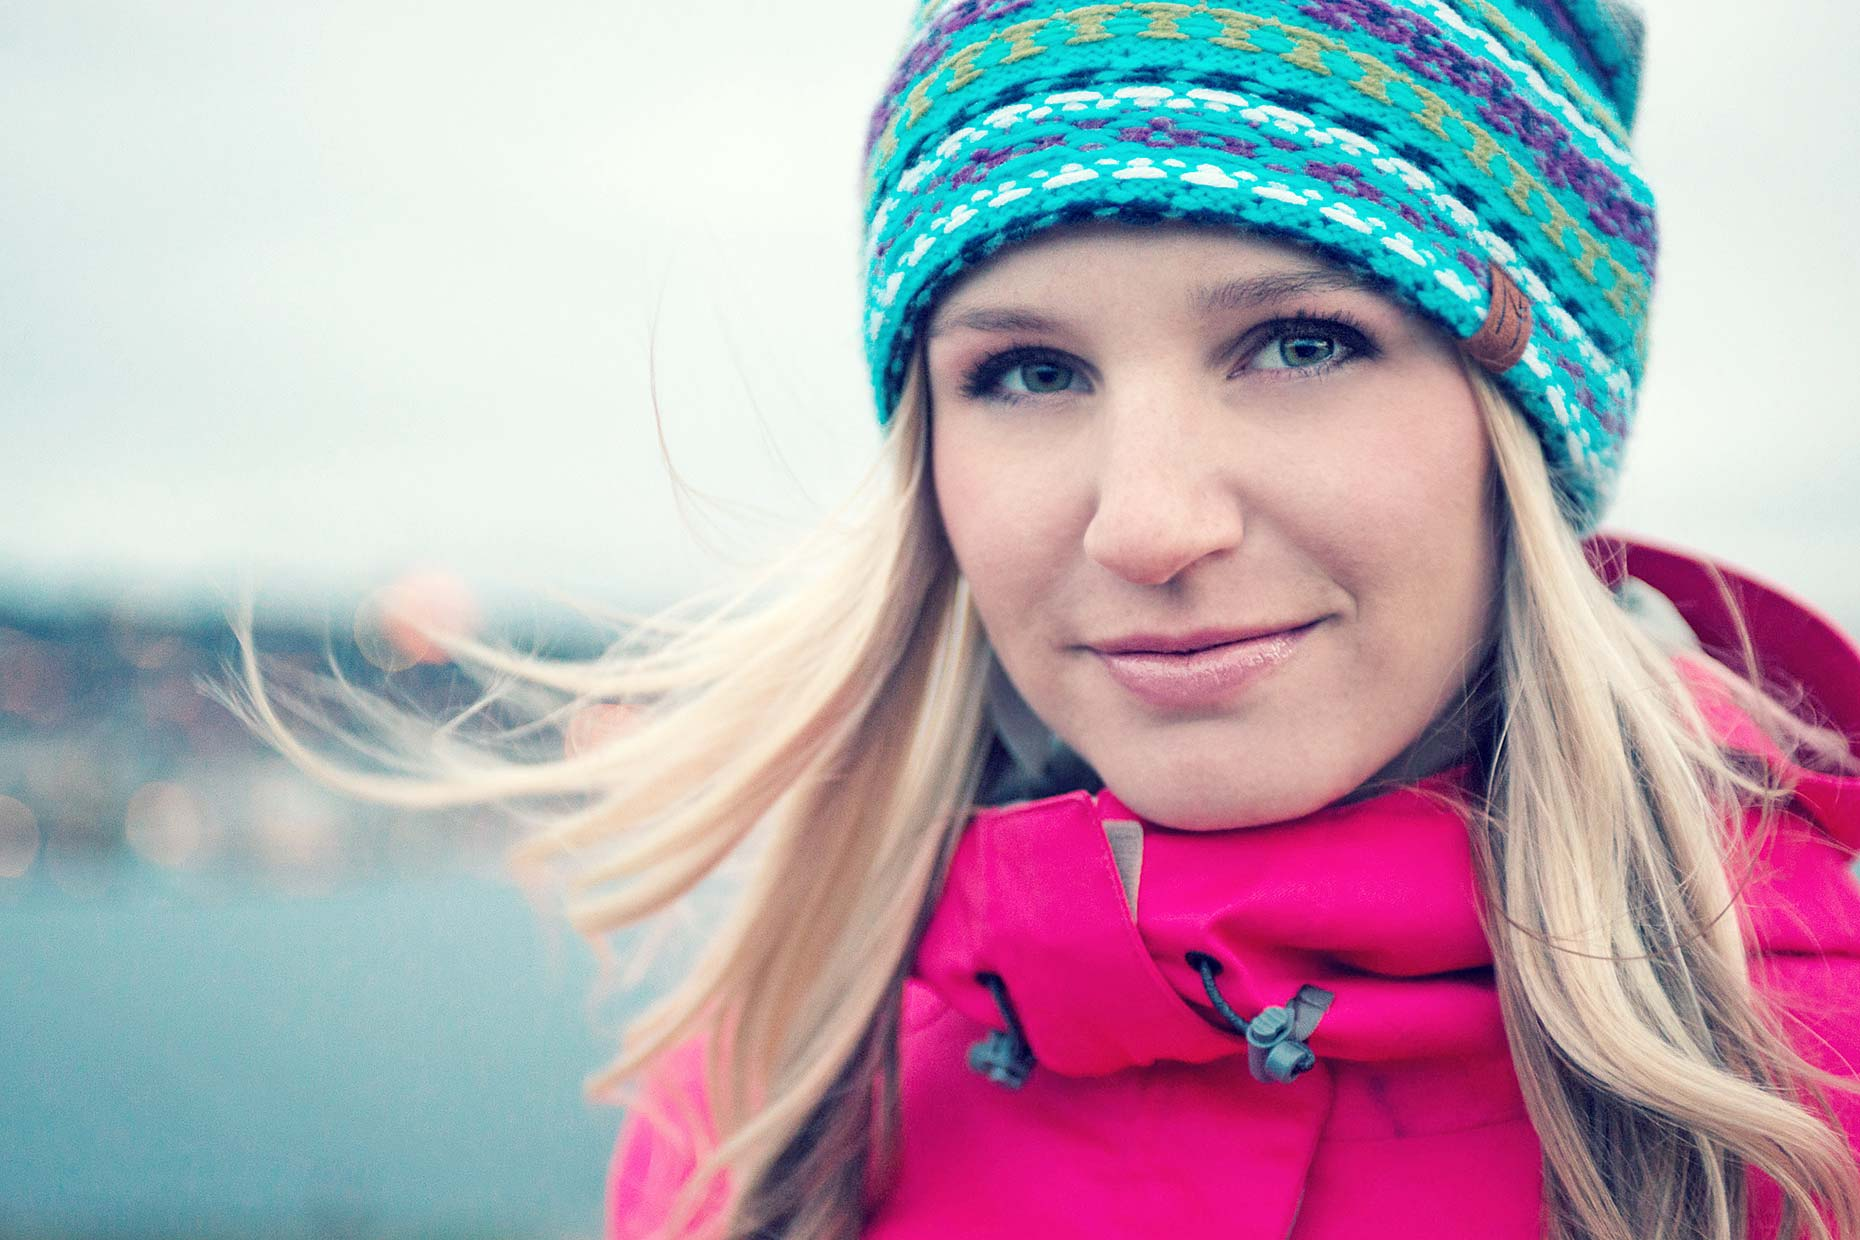 Ian-Coble-Portrait-Location-Womens-Skiing-Amie-Engerbretson